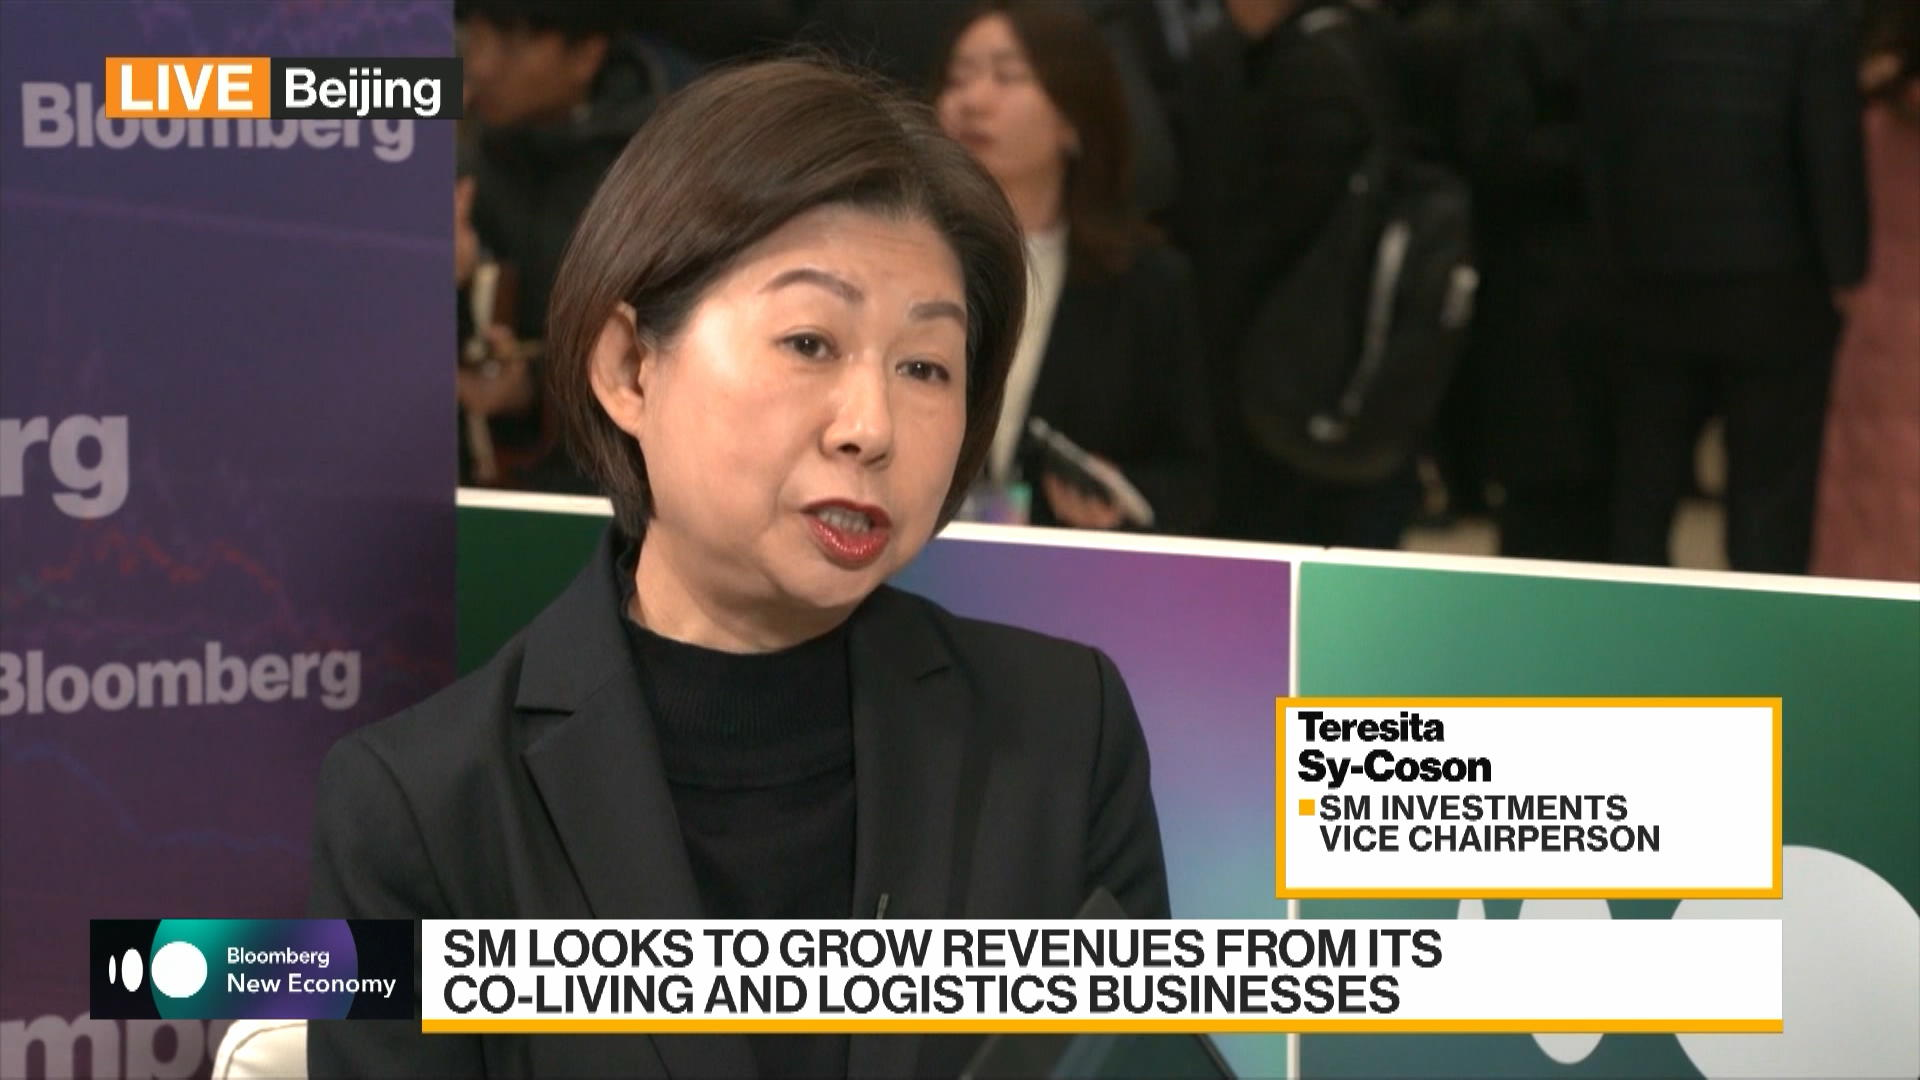 U.S.-China Trade, Philippines Business Sentiment Discussed by Teresita Sy-Coson of SM Investments